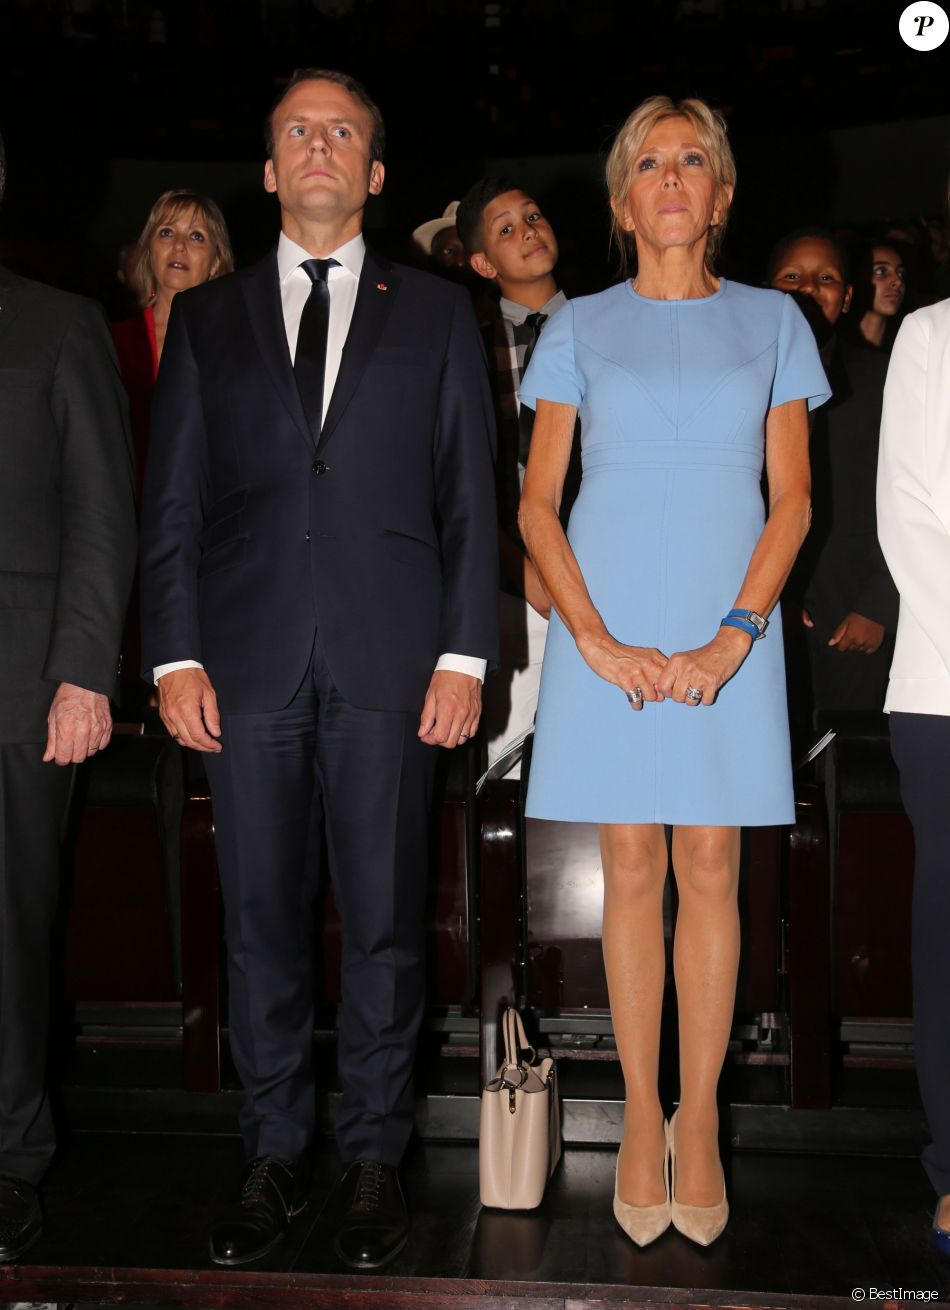 Le Président de la République Française, Emmanuel Macron et sa femme la Première dame Brigitte Macron (Trogneux) - Le président de la République française et son homologue colombien lancent conjointement la saison de la Colombie en France avec un concert binational à la Philharmonie de Paris, France, le 23 juin 2017. © Sergi/Pool/Bestimage